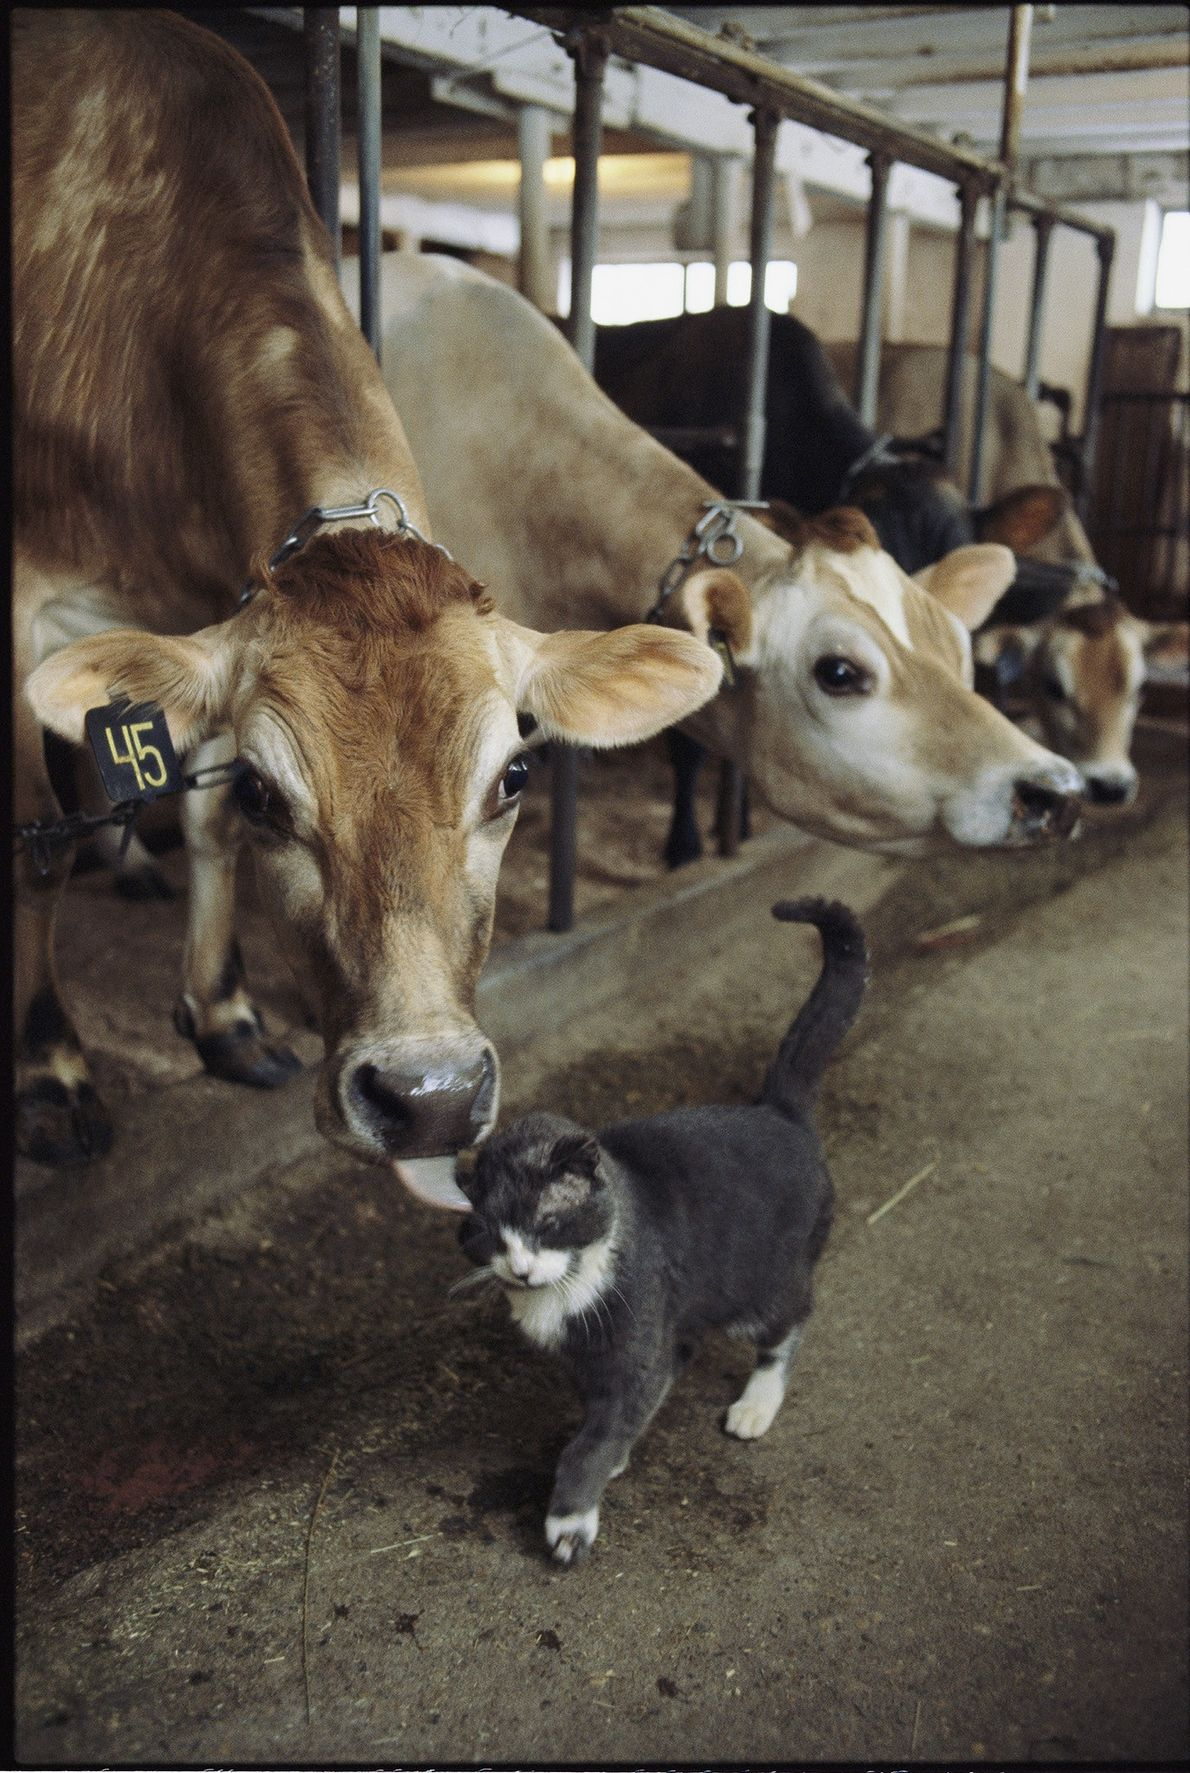 Got milk? A cat gets a kiss from a cow on a dairy farm in Massachusetts.